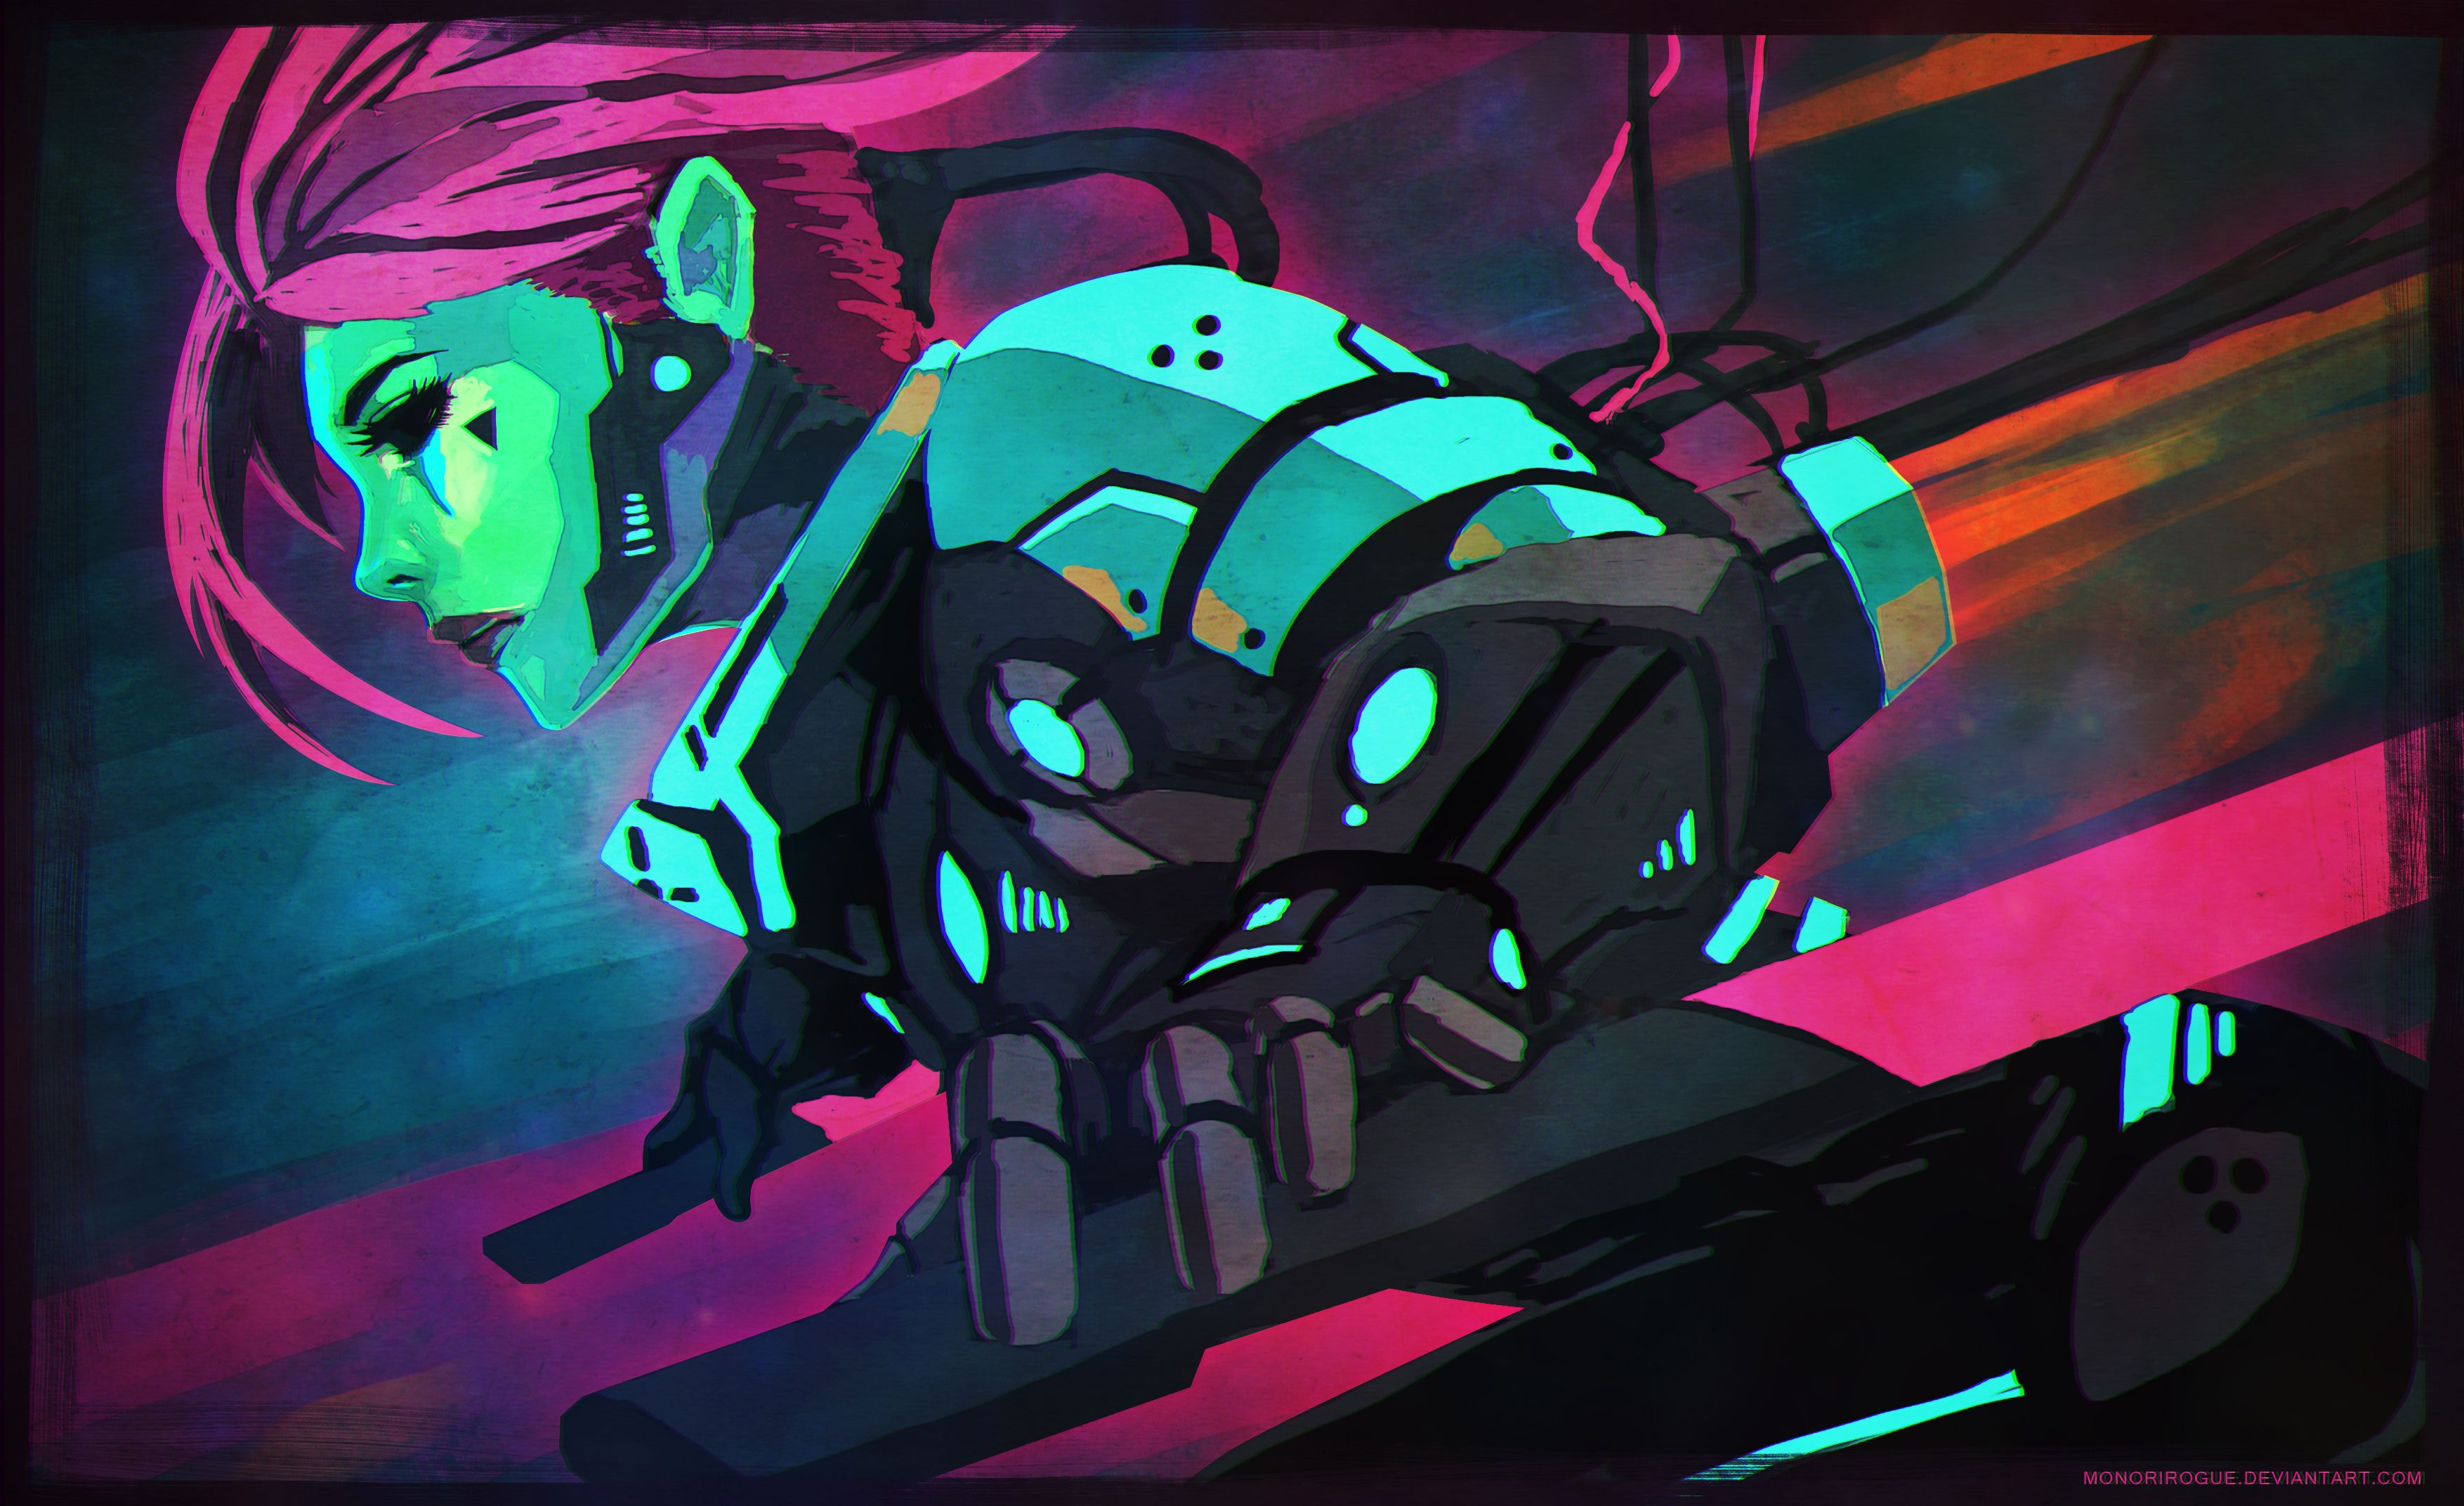 Cyberpunk doodle by MonoriRogue wallpapers (for pc